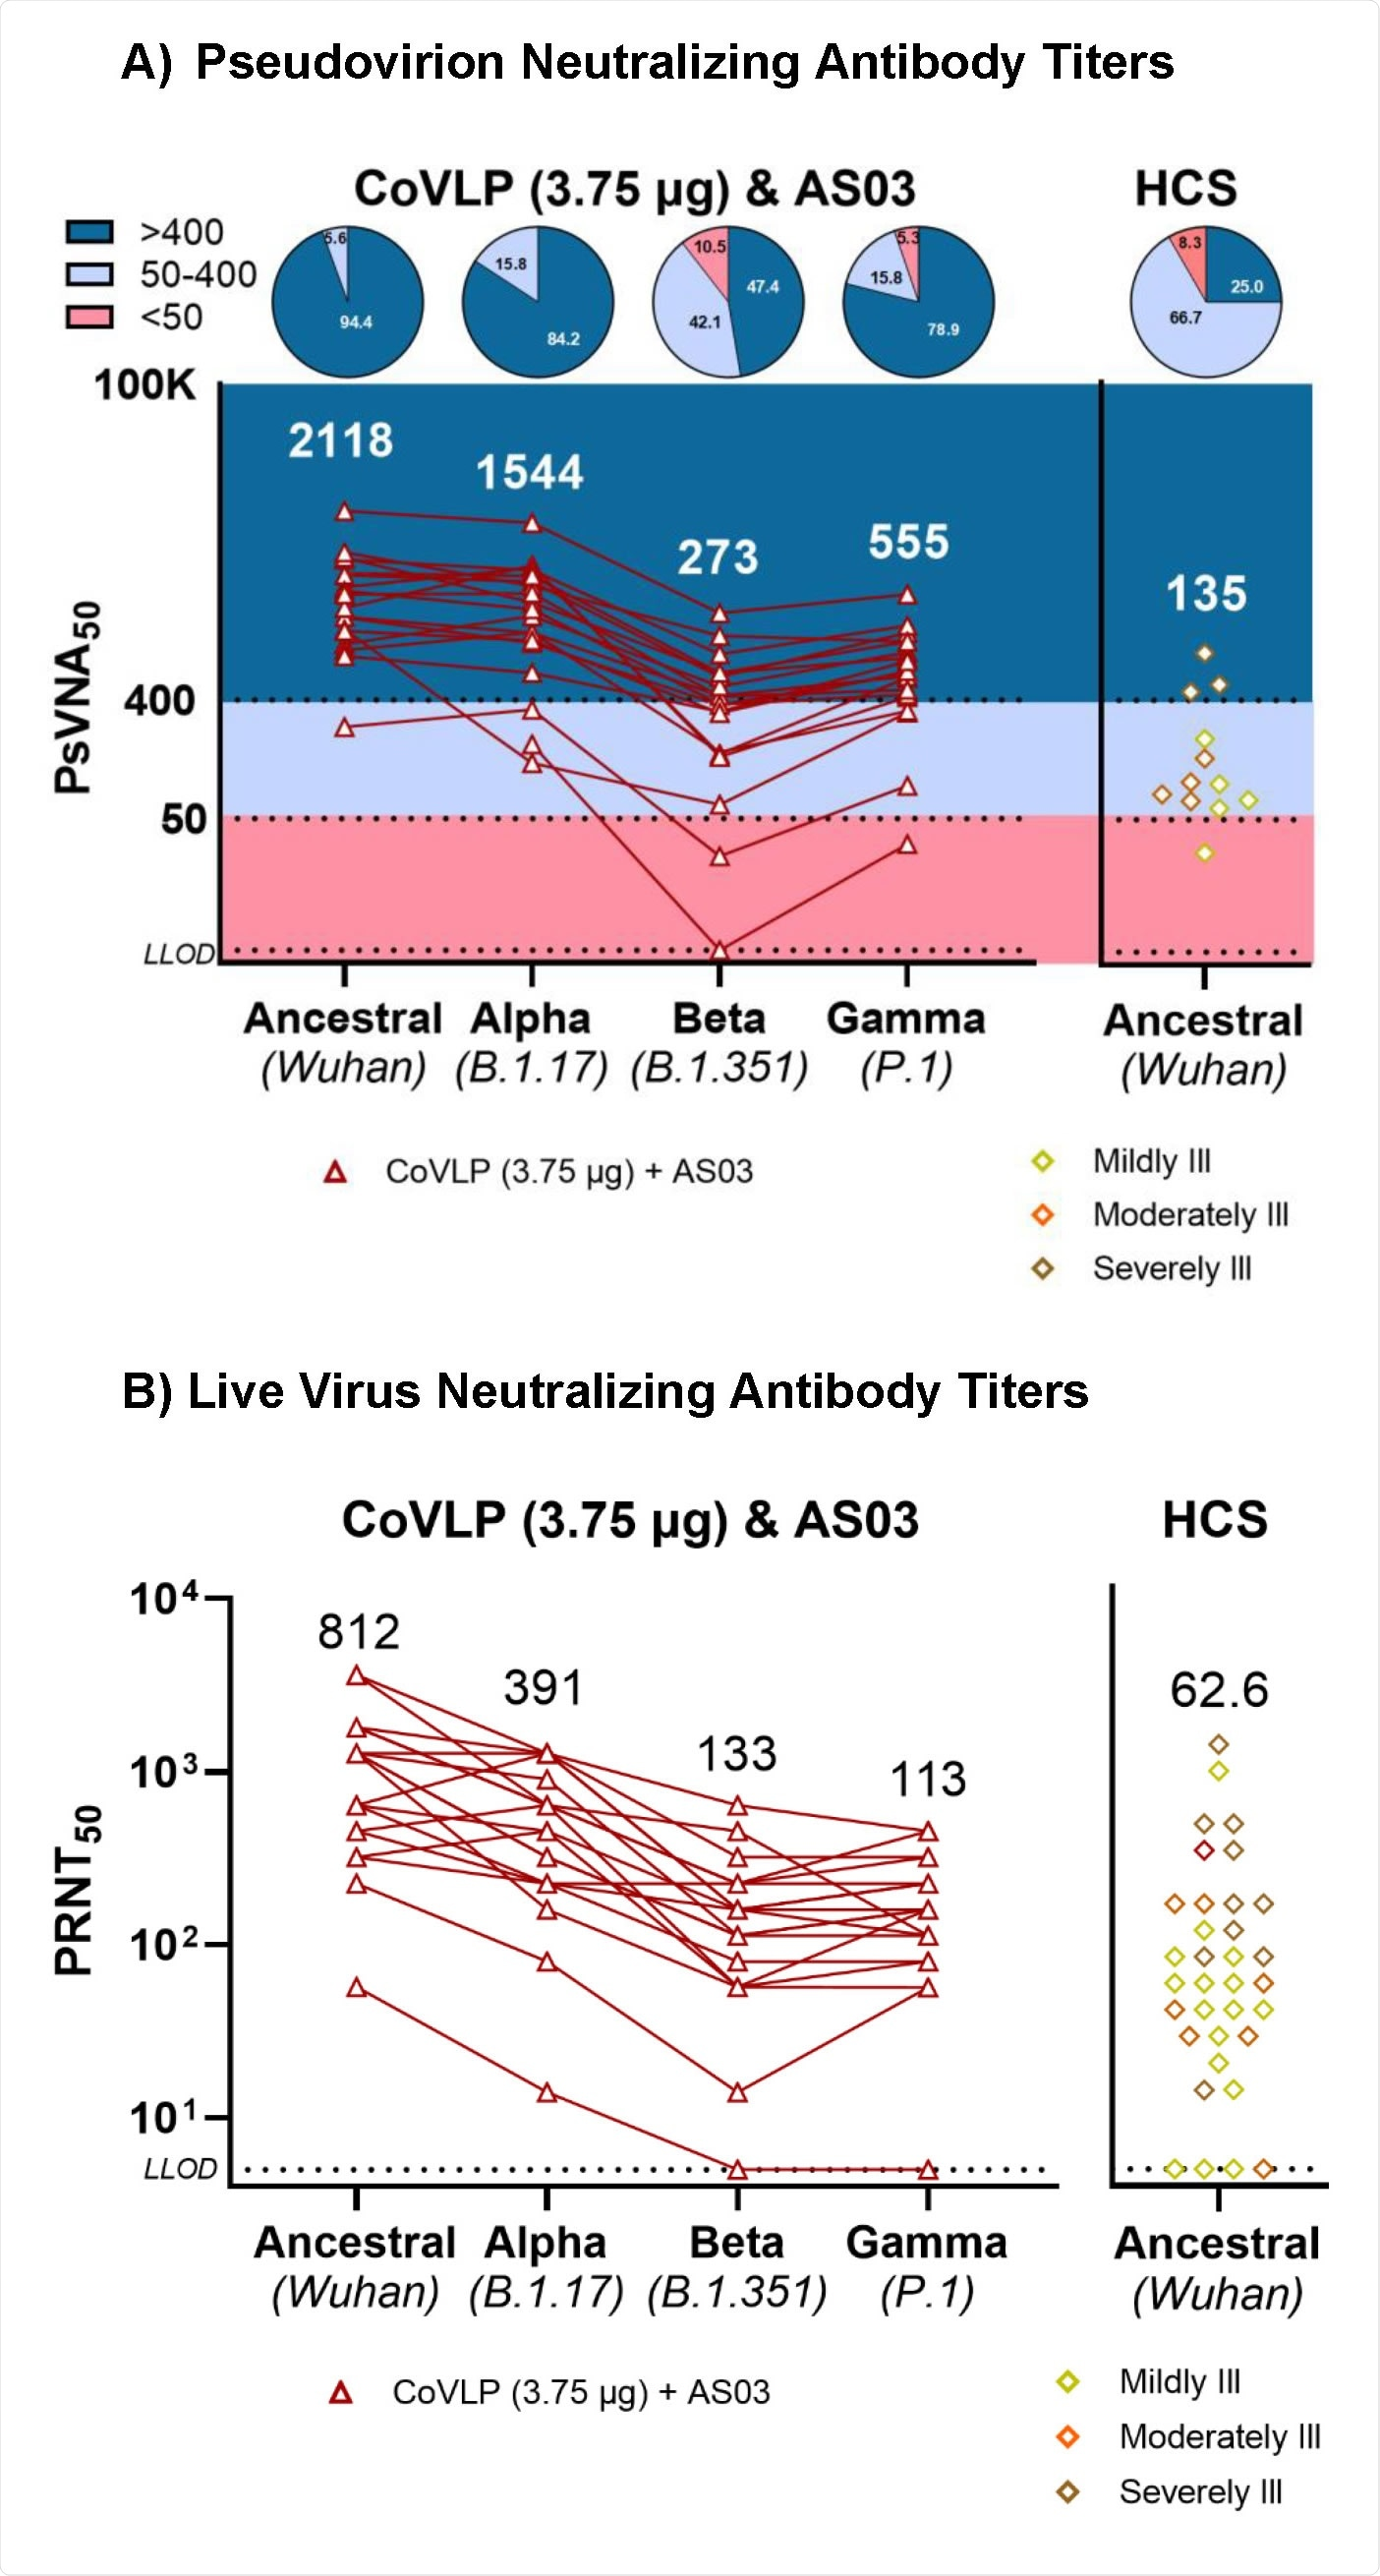 To evaluate cross-reactivity, Day 42 NAbs of subjects vaccinated with 3.75 µg CoVLP adjuvanted with AS03 were quantified in a (A) VSV pseudovirion neutralization assay or (B) live virus neutralization assay with the ancestral Wuhan strain and the Alpha, Beta, and Gamma variants. Convalescent sera or plasma (HCS) samples were collected at least 14 days after a positive diagnosis of COVID-19 (RTPCR) from individuals whose illness was classified as mild, moderate, or severe/critical (Panel A: